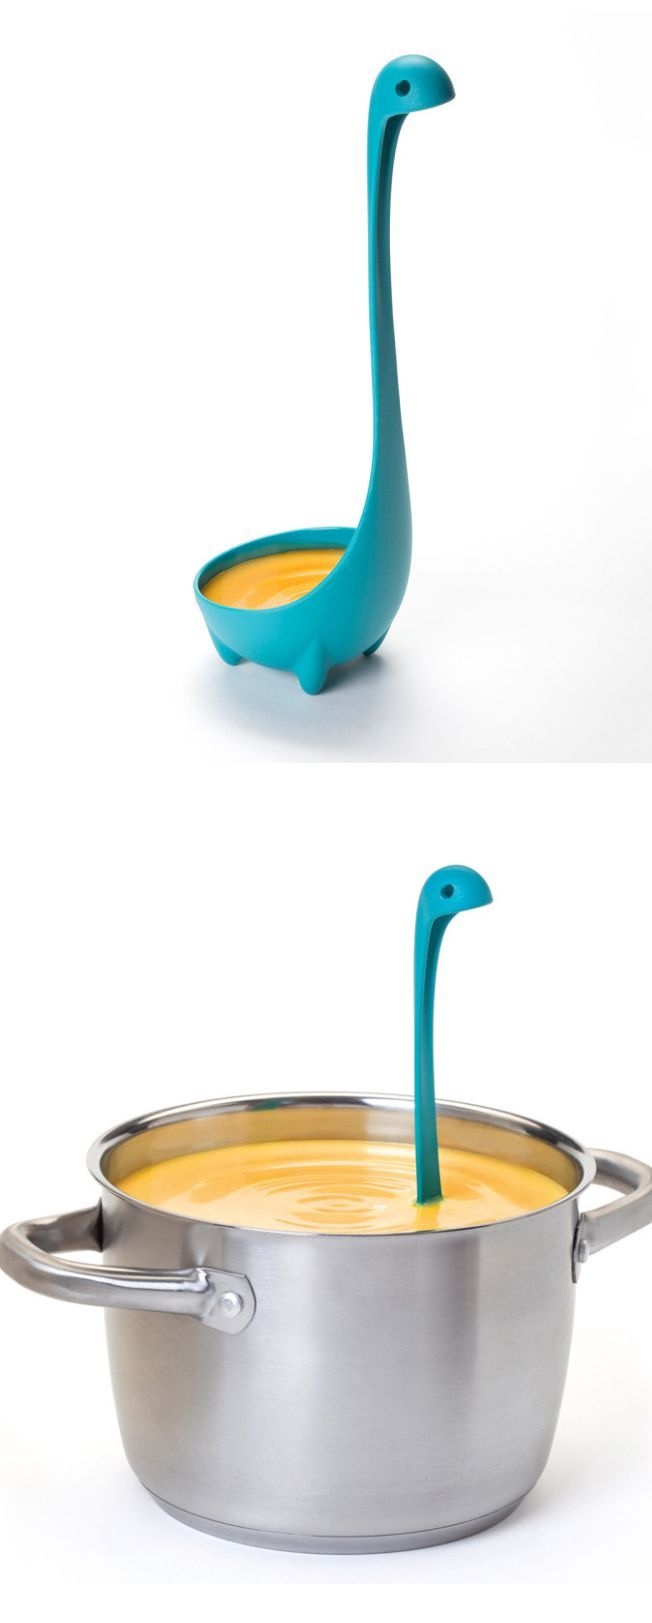 Loch Ness Ladle: So cute! - ♠ re-pinned by   http://www.waterfront-properties.com/pbgoldmarshclub.php